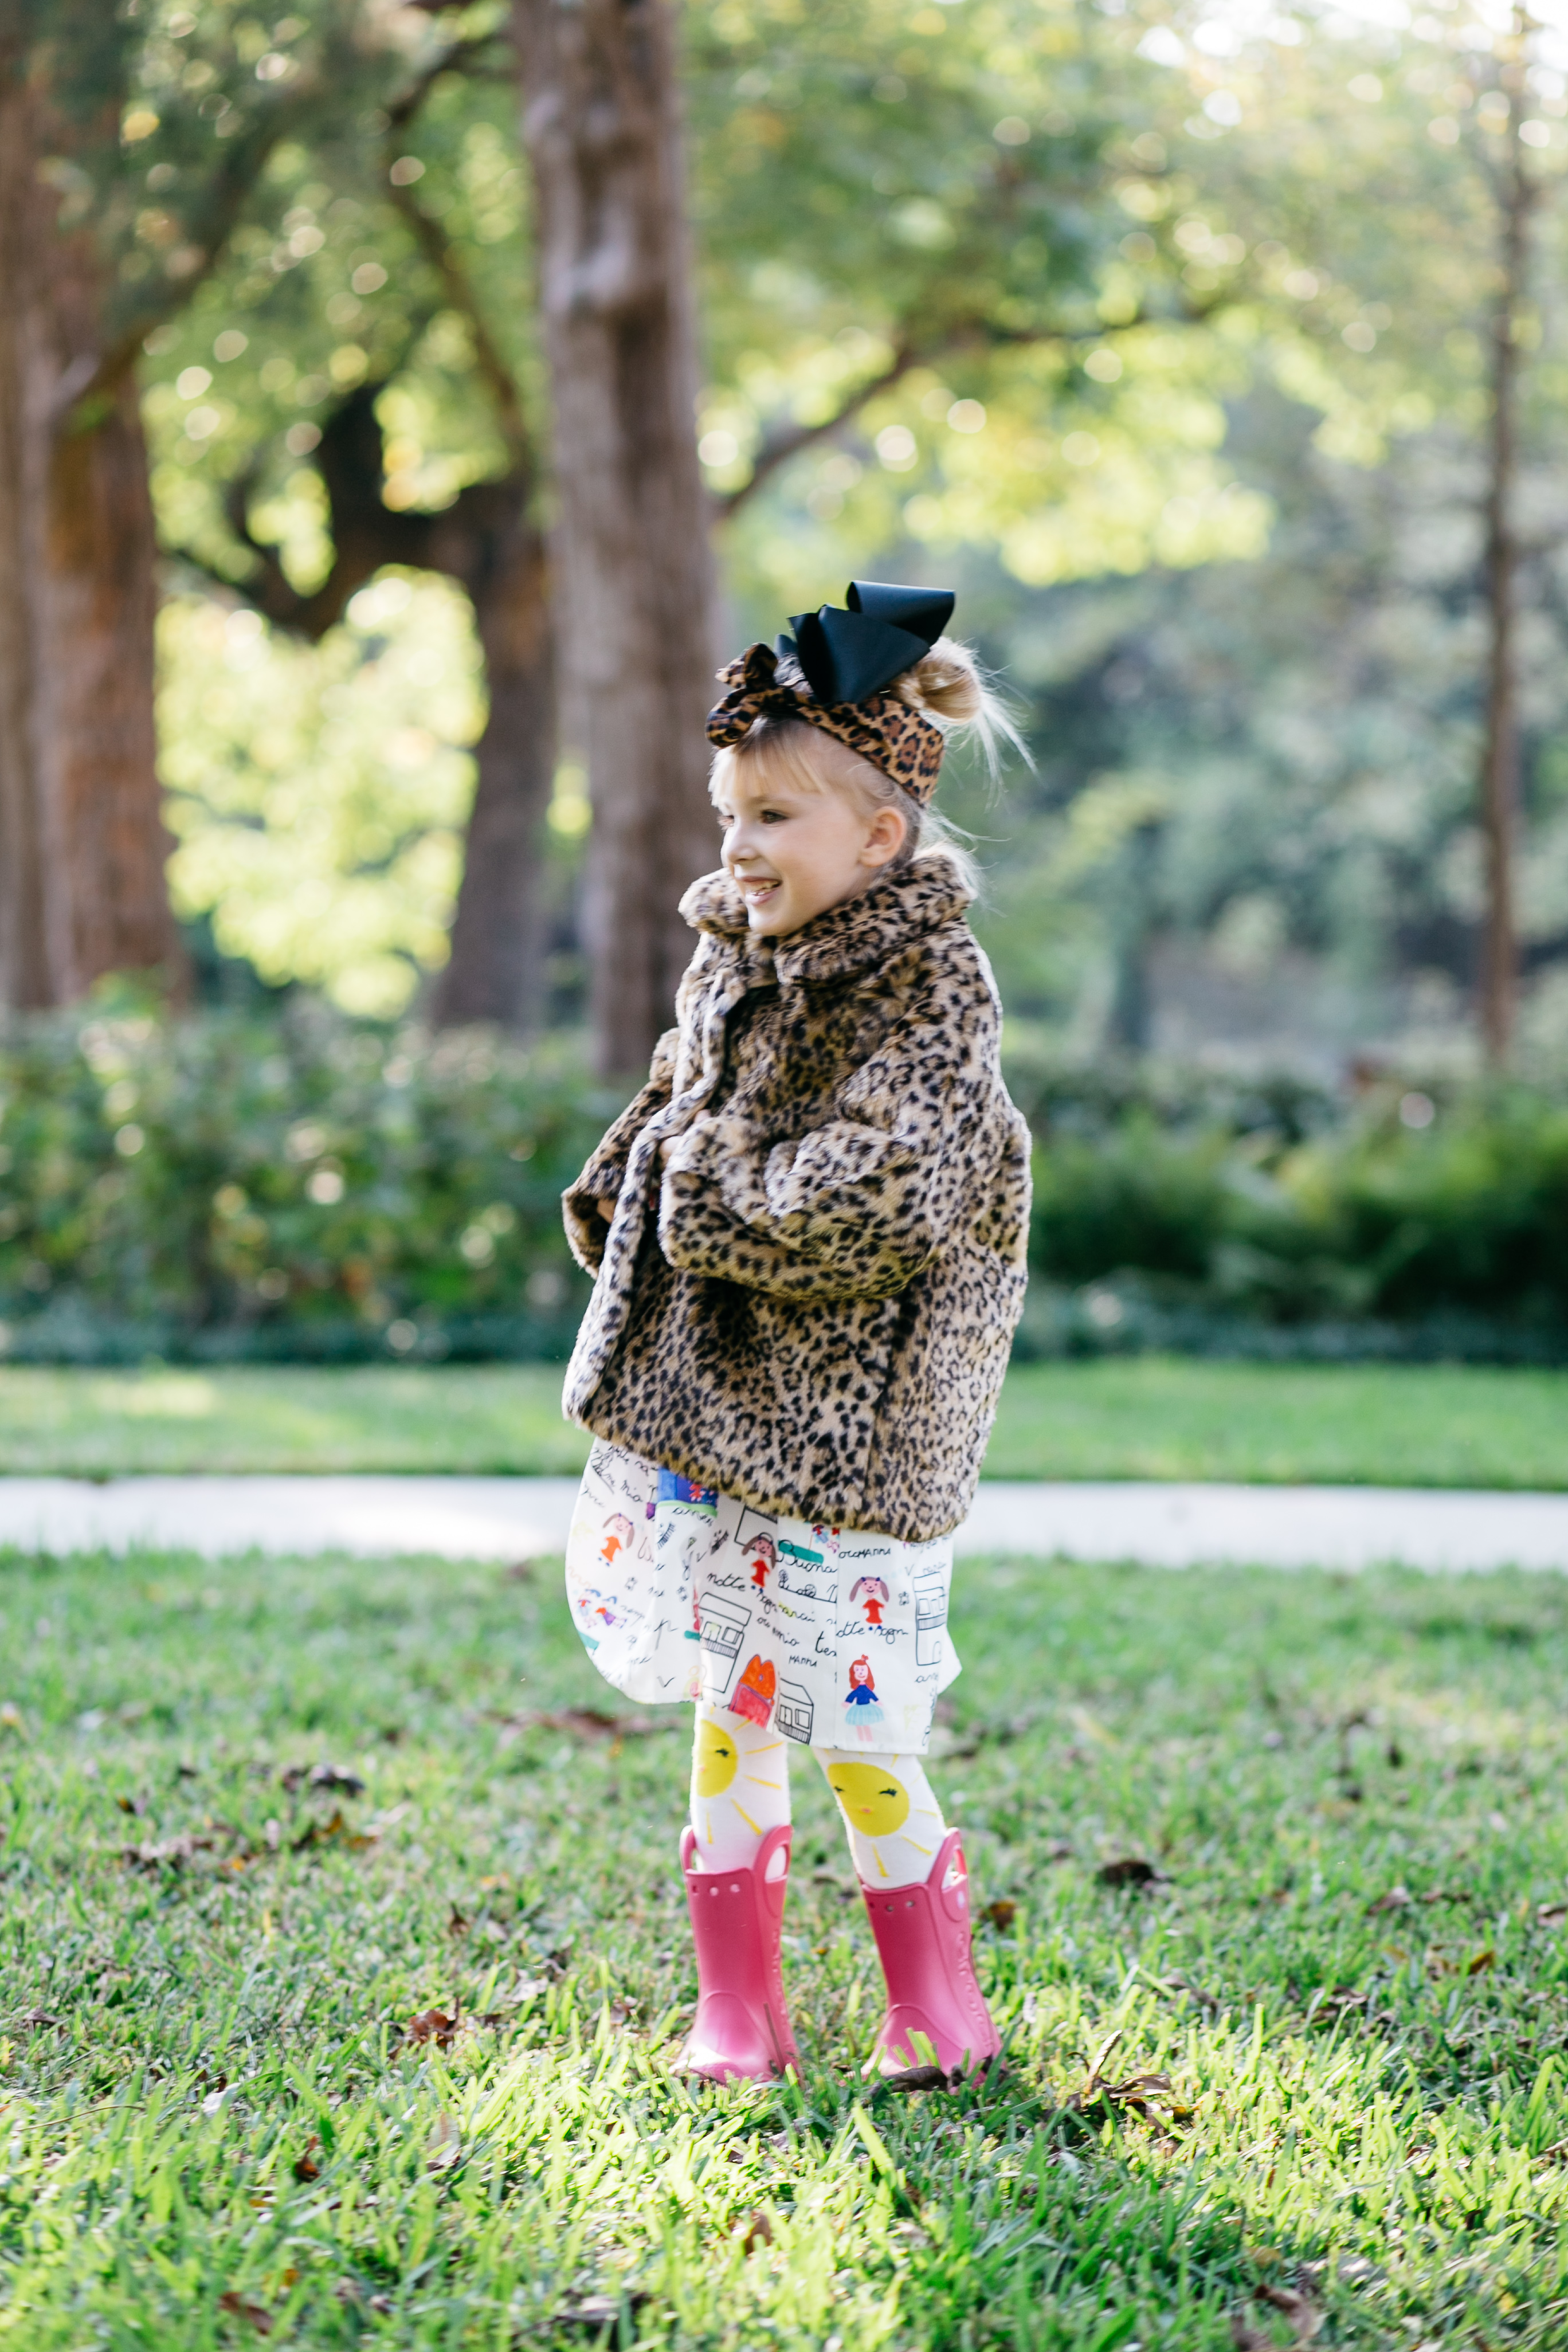 Annabelle Bowman wearing aOshKosh B'gosh Faux fur coat and Croc Rainboots